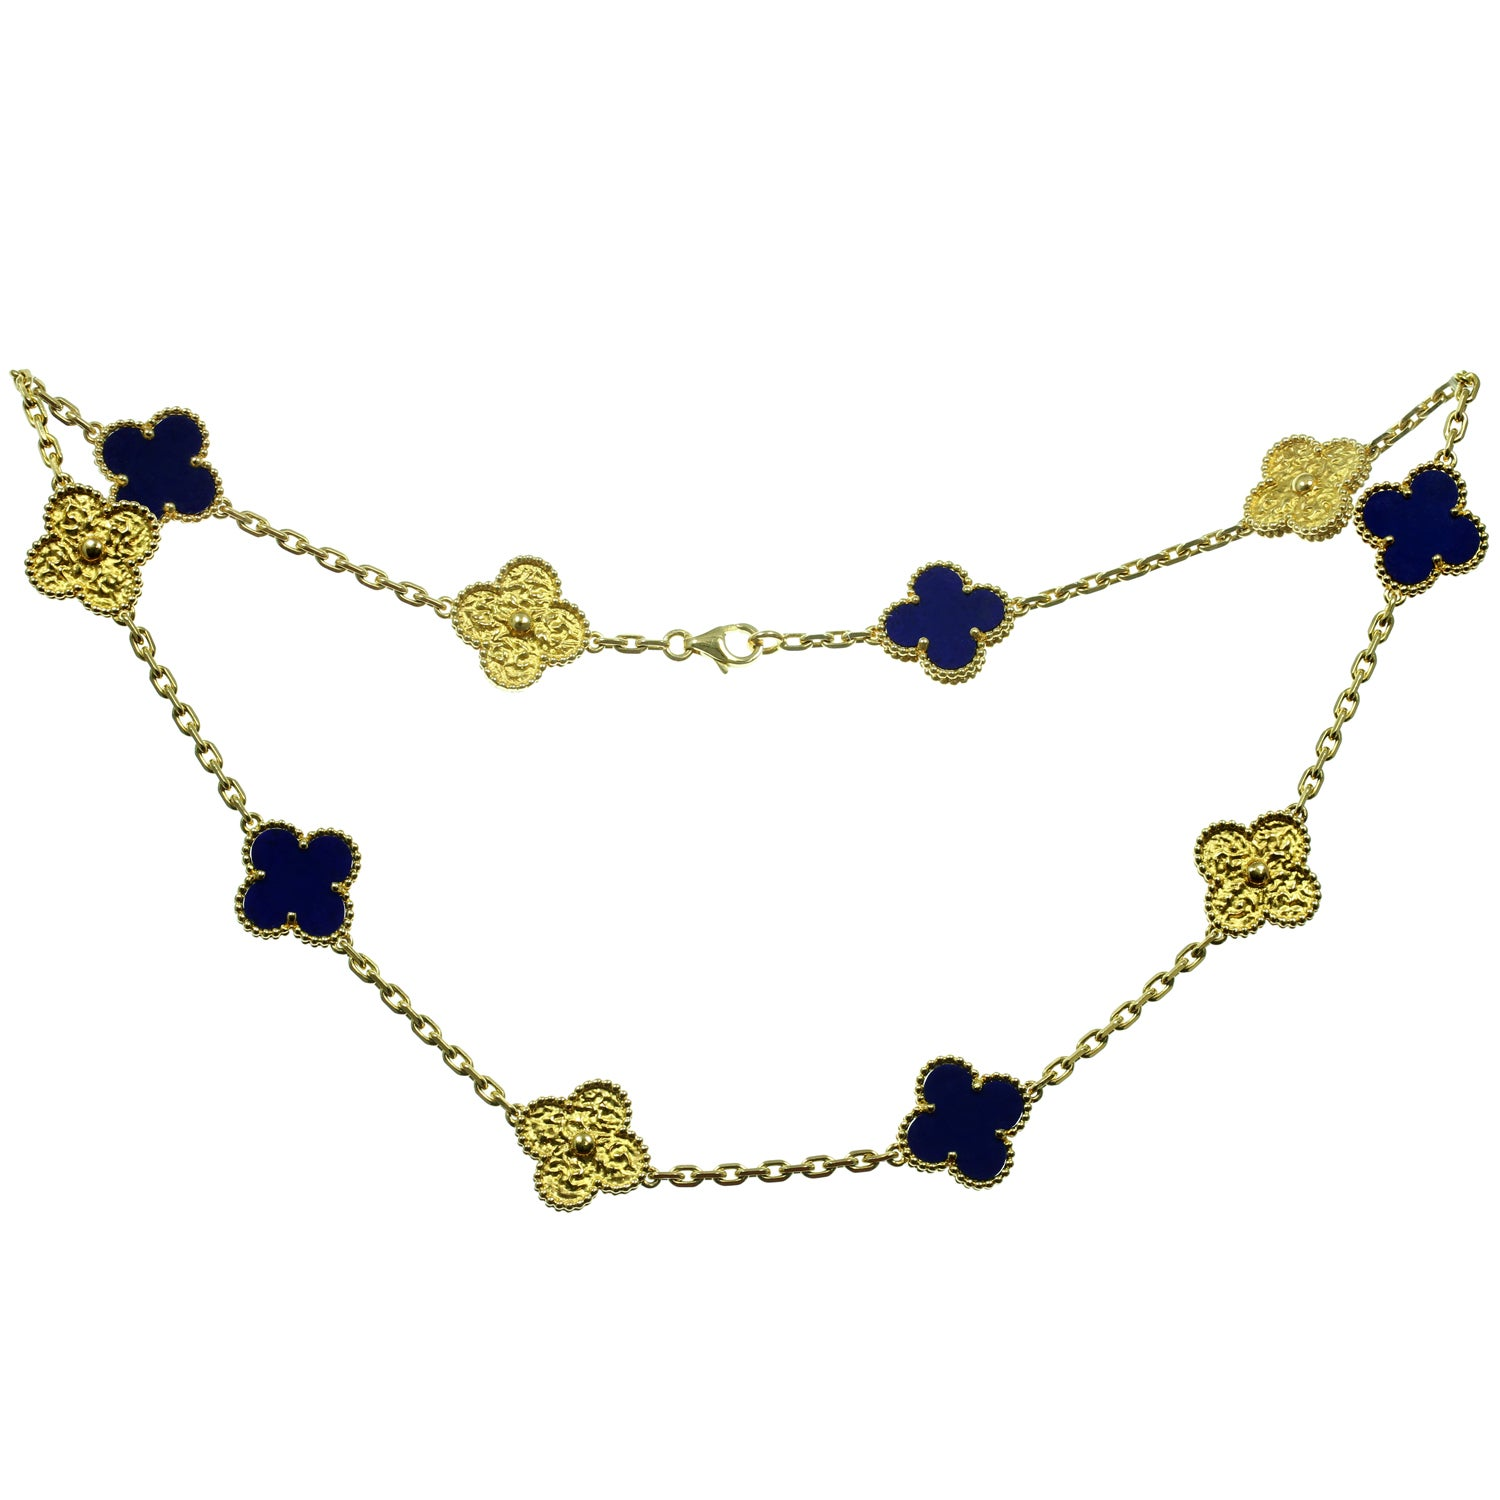 47a862d95f1c Van Cleef and Arpels Vintage Alhambra Lapis Lazuli Yellow Gold 10 Motif  Necklace For Sale at 1stdibs